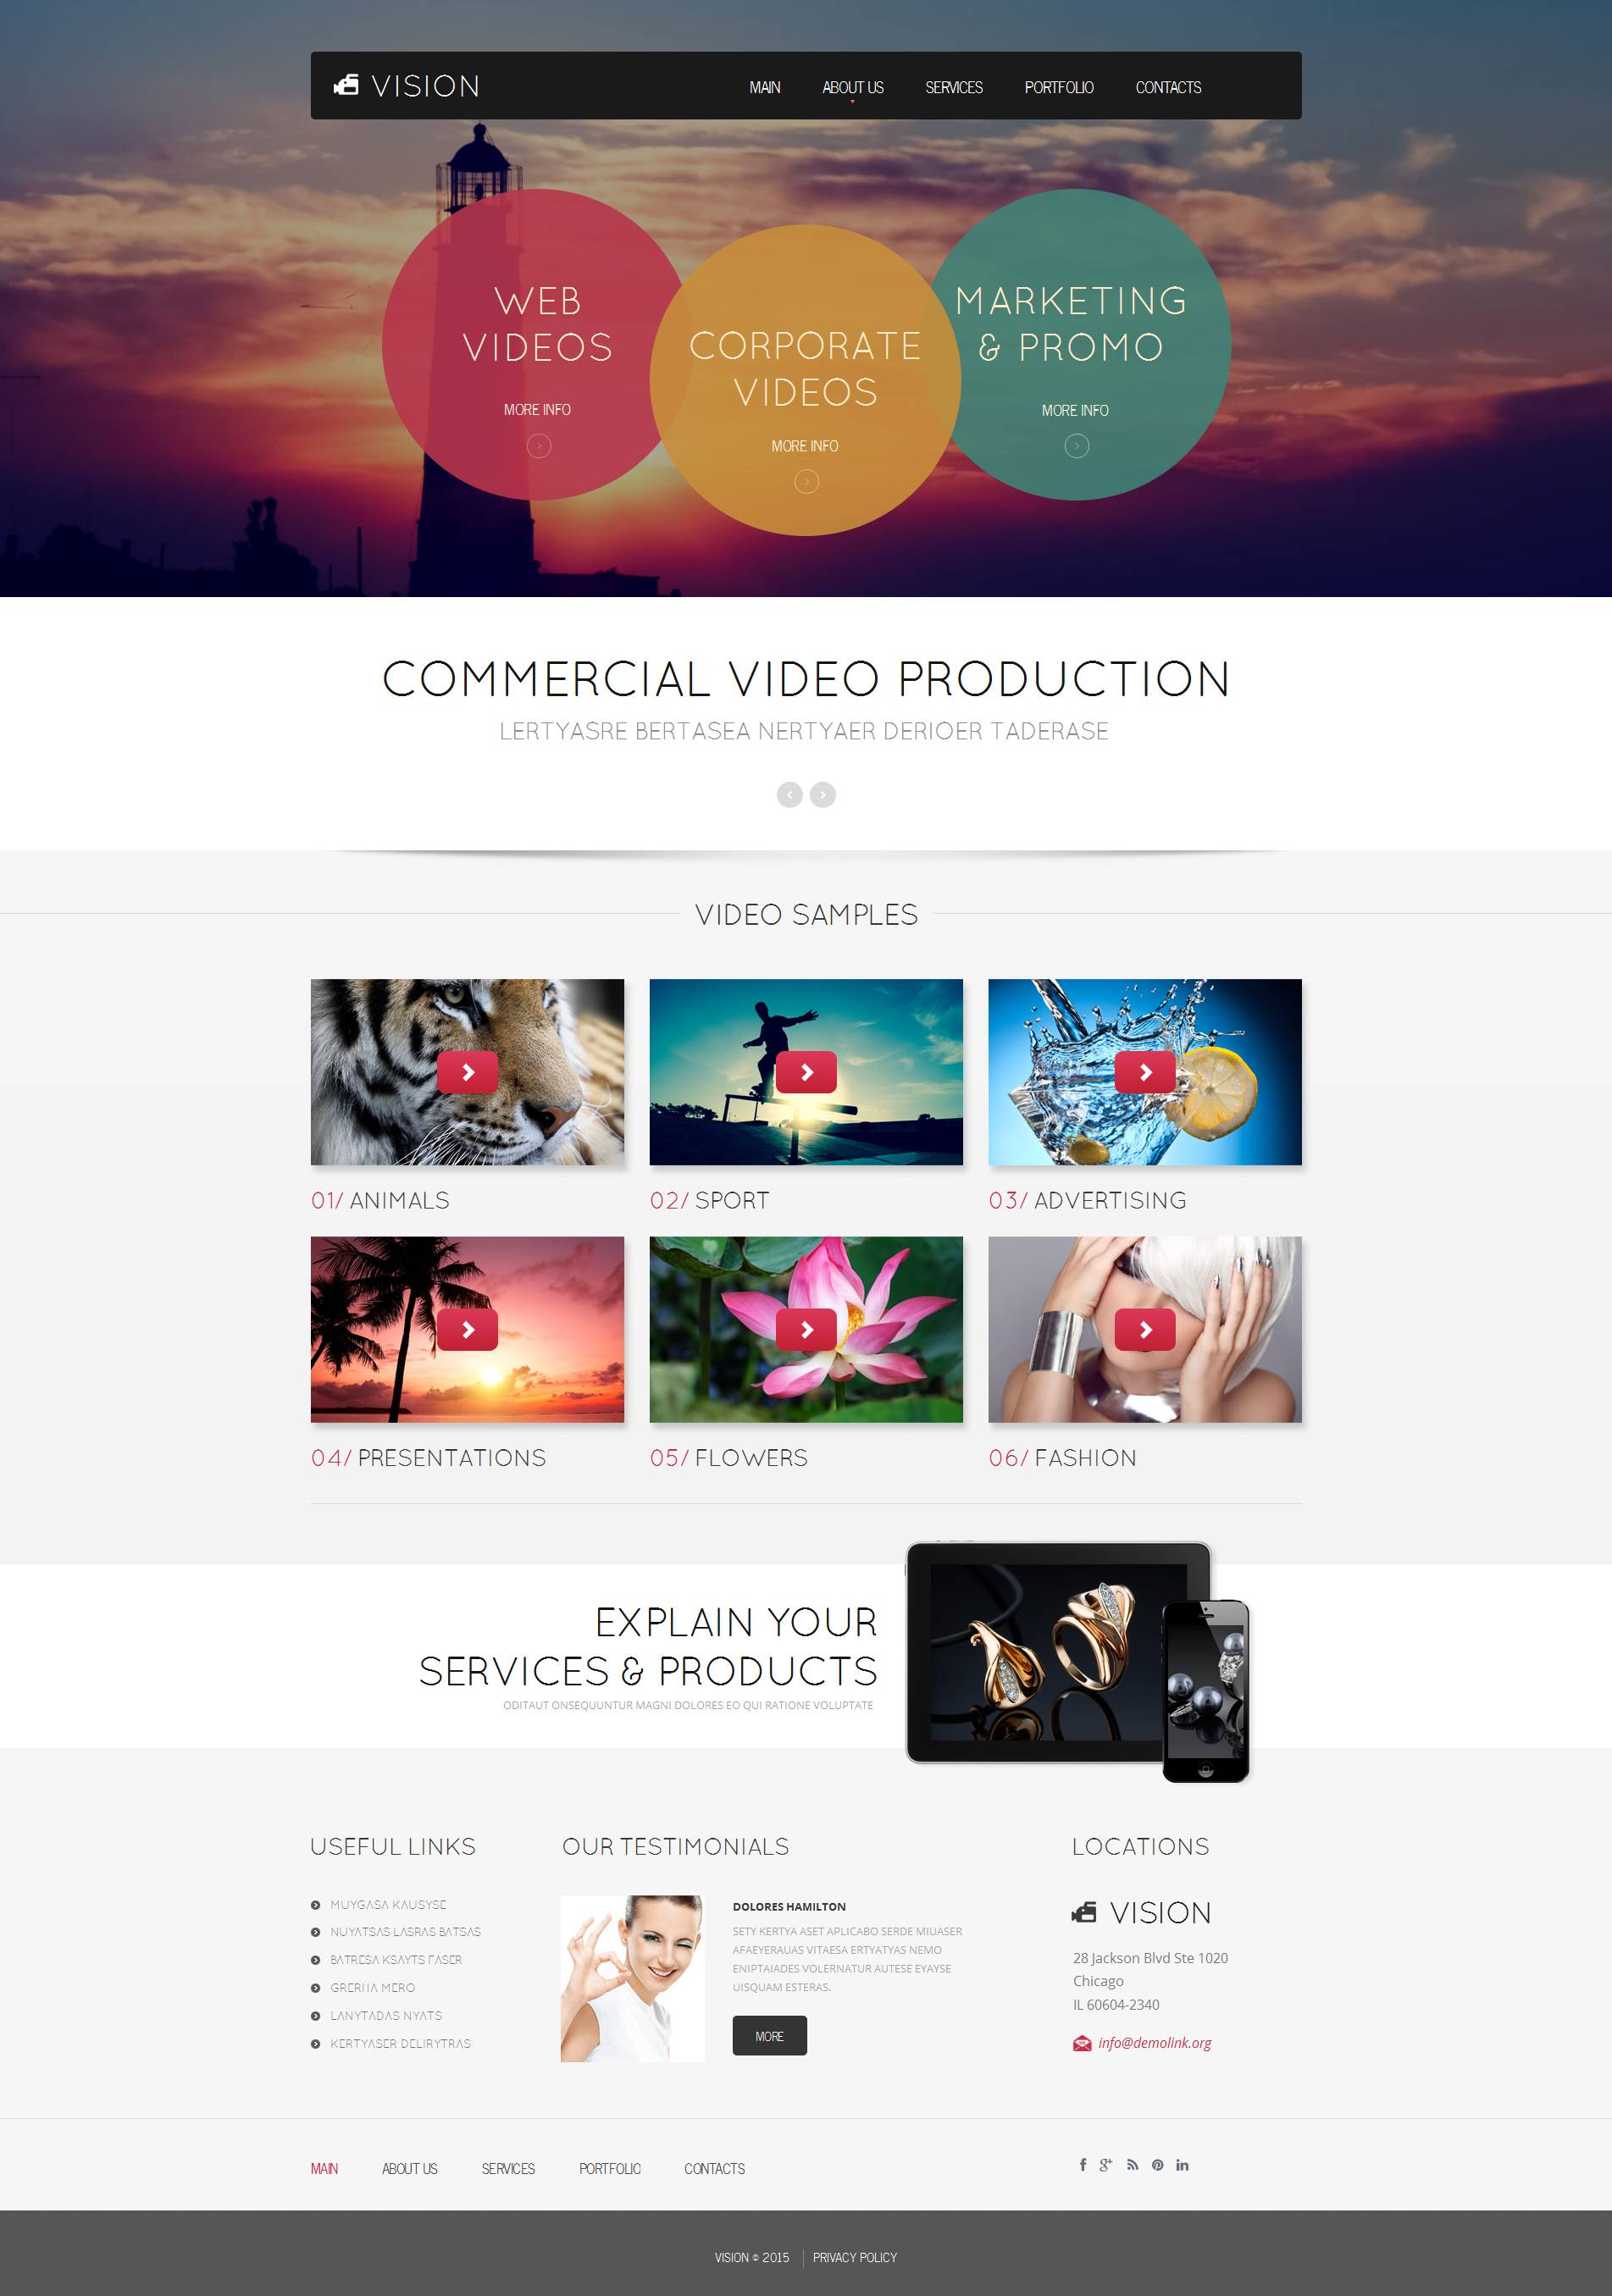 The Vision Commercial Video Moto CMS HTML Design 53519, one of the best Moto CMS HTML templates of its kind (media, most popular), also known as Vision commercial video Moto CMS HTML template, industry Moto CMS HTML template, production Moto CMS HTML template, dvd Moto CMS HTML template, sample Moto CMS HTML template, clients Moto CMS HTML template, web prices Moto CMS HTML template, operator Moto CMS HTML template, movie Moto CMS HTML template, motion Moto CMS HTML template, graphic Moto CMS HTML template, graphics Moto CMS HTML template, animation and related with Vision commercial video, industry, production, dvd, sample, clients, web prices, operator, movie, motion, graphic, graphics, animation, etc.